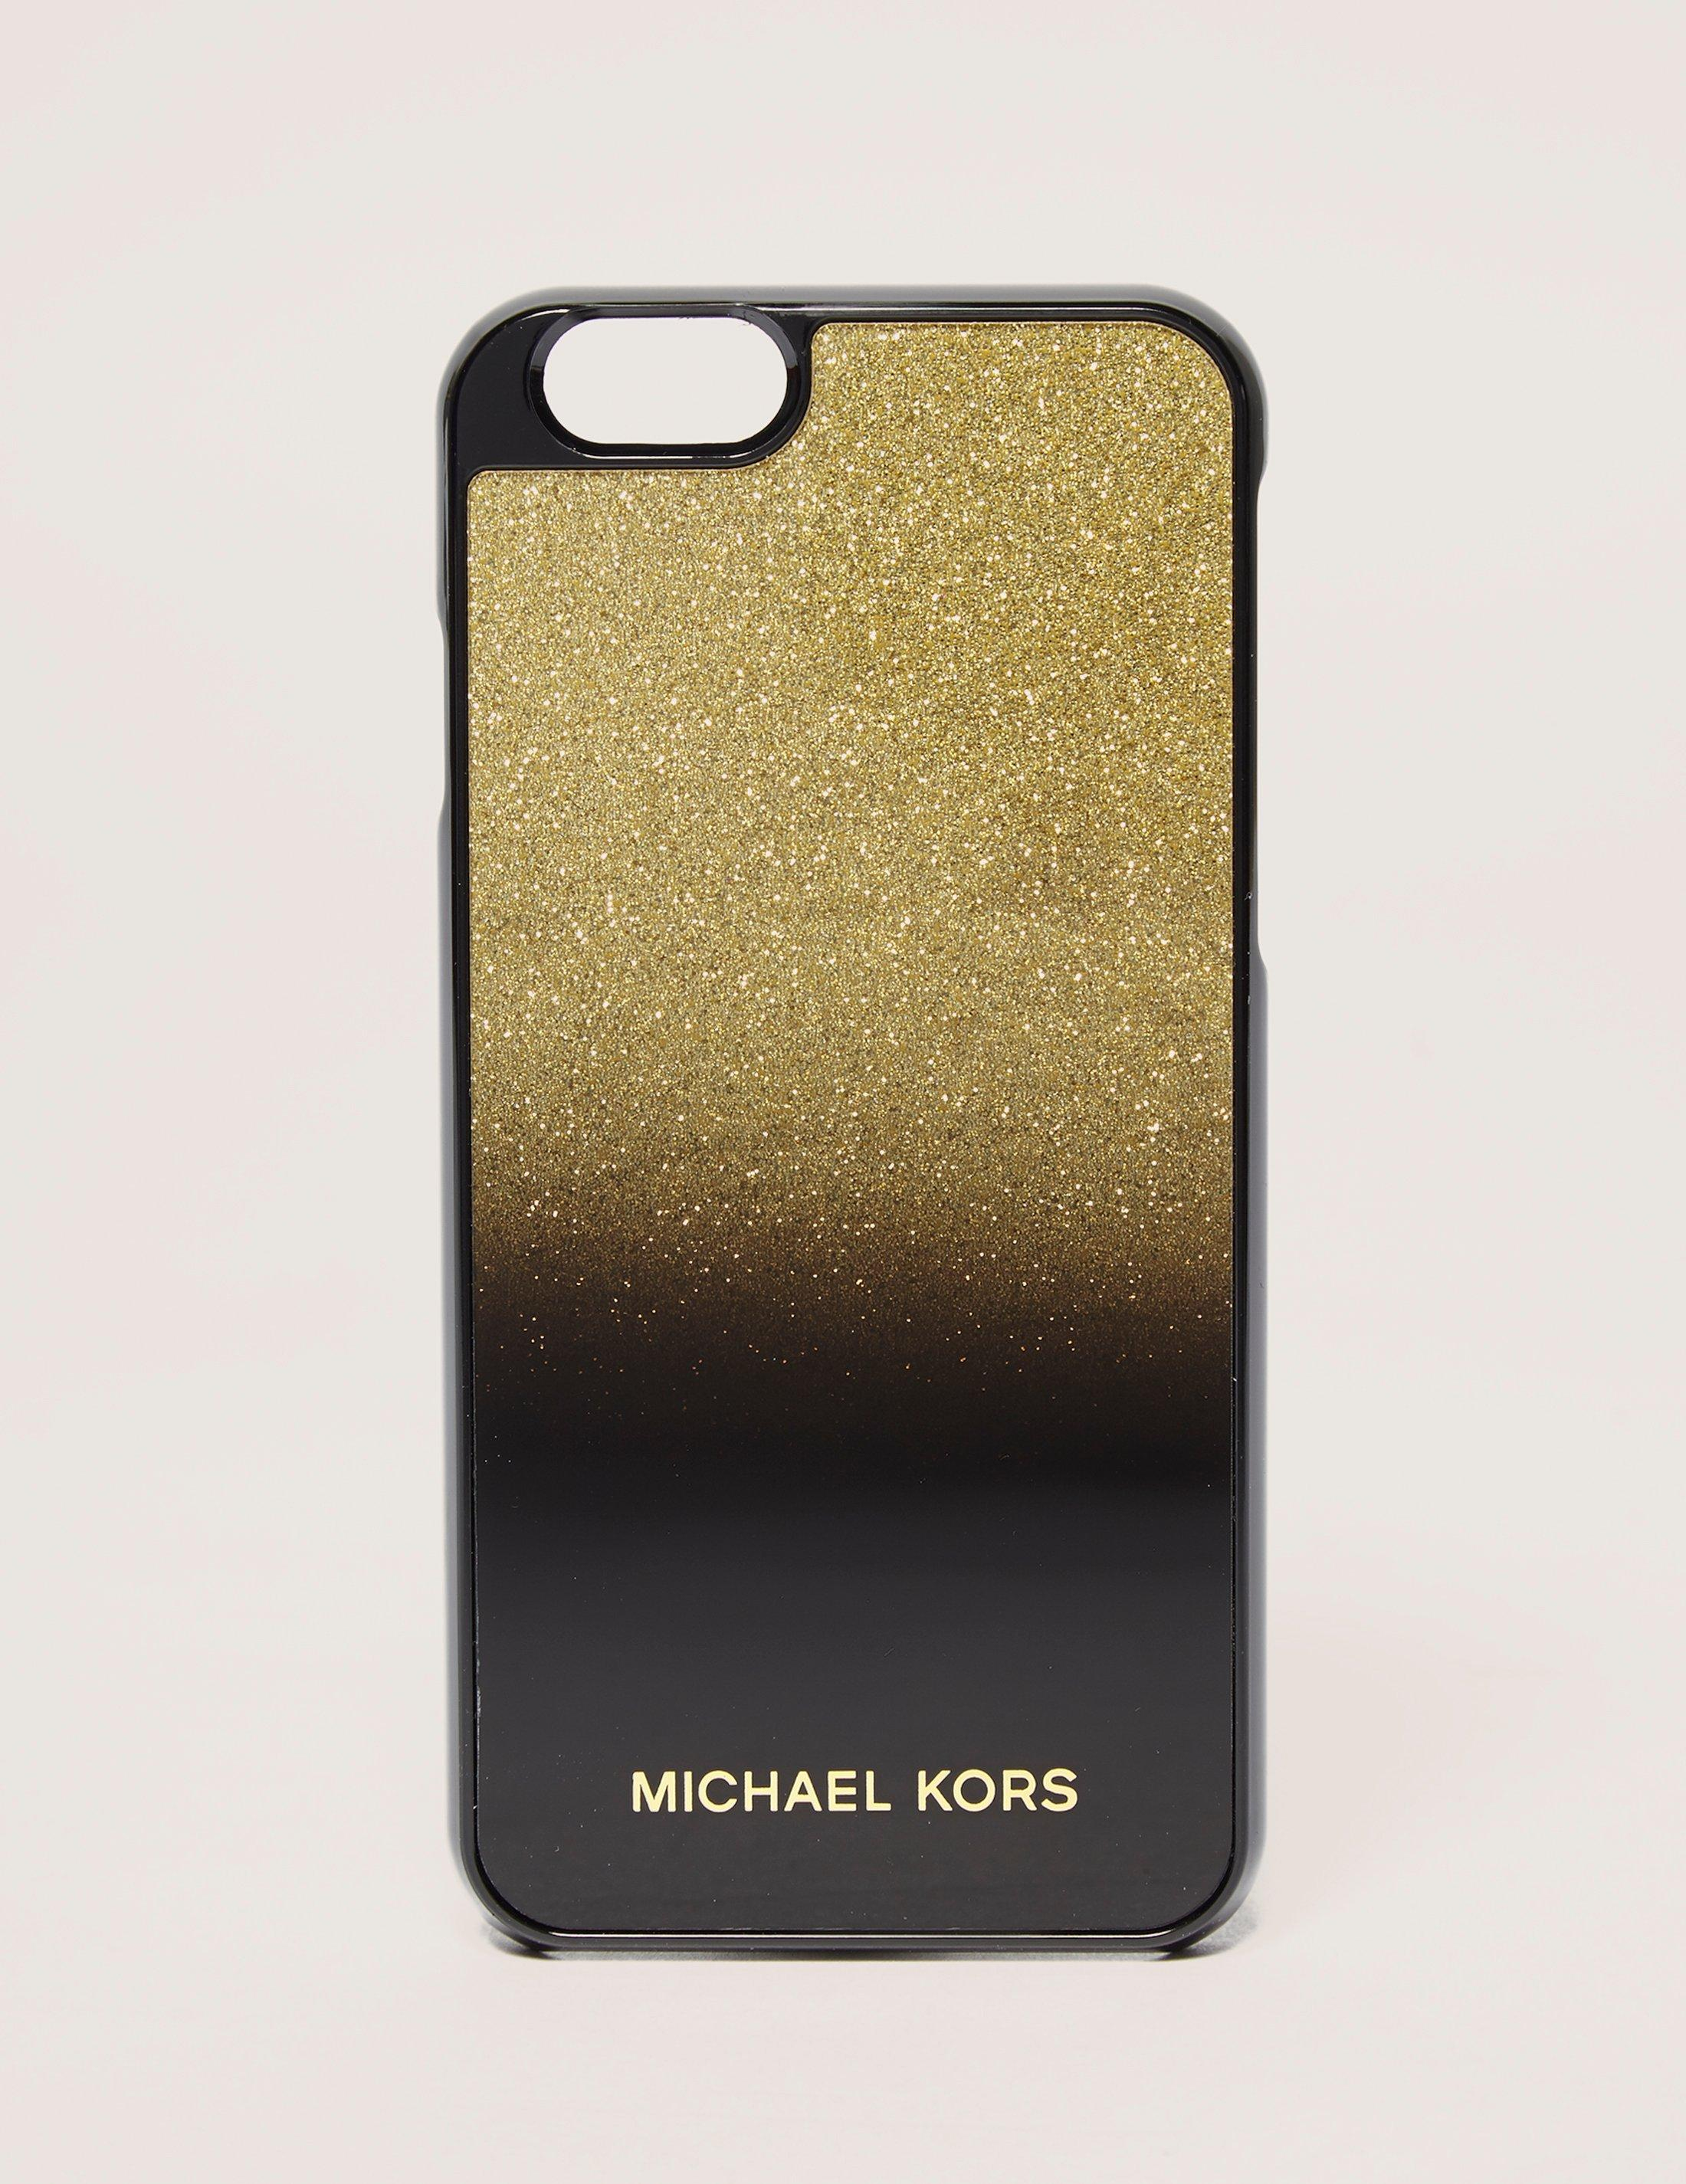 michael kors iphone lyst michael kors iphone 6 cover in black 567